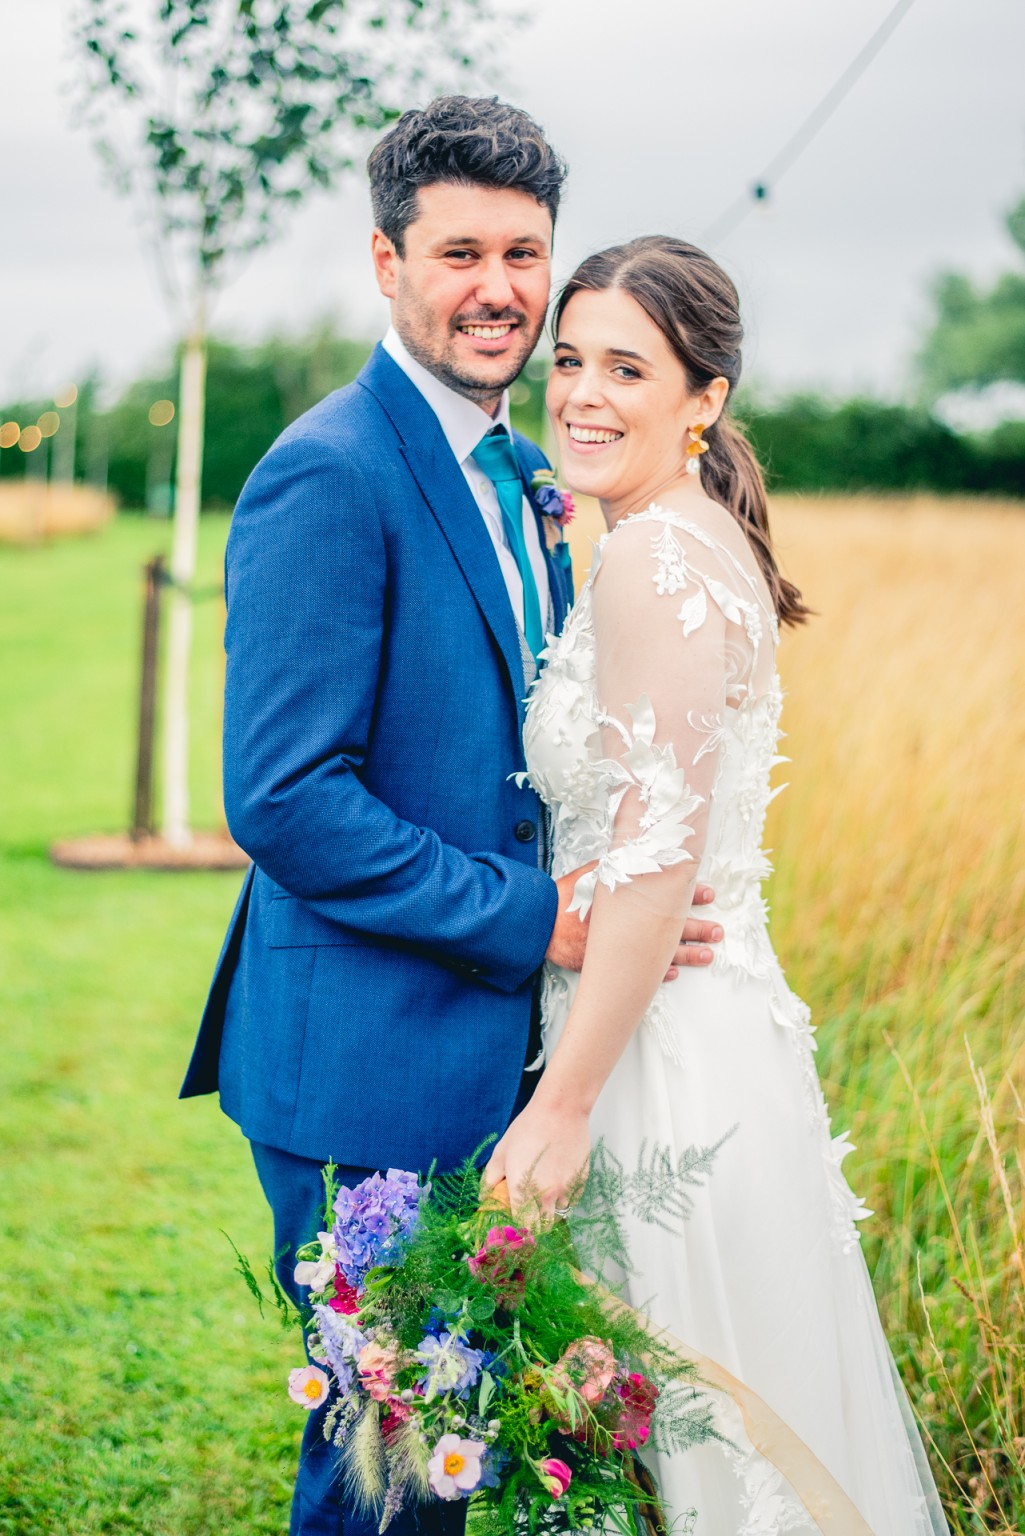 B&A wedding day - Oaktree farm outdoor wedding venue in nottinghamshire / lincolnshire - couple smiling